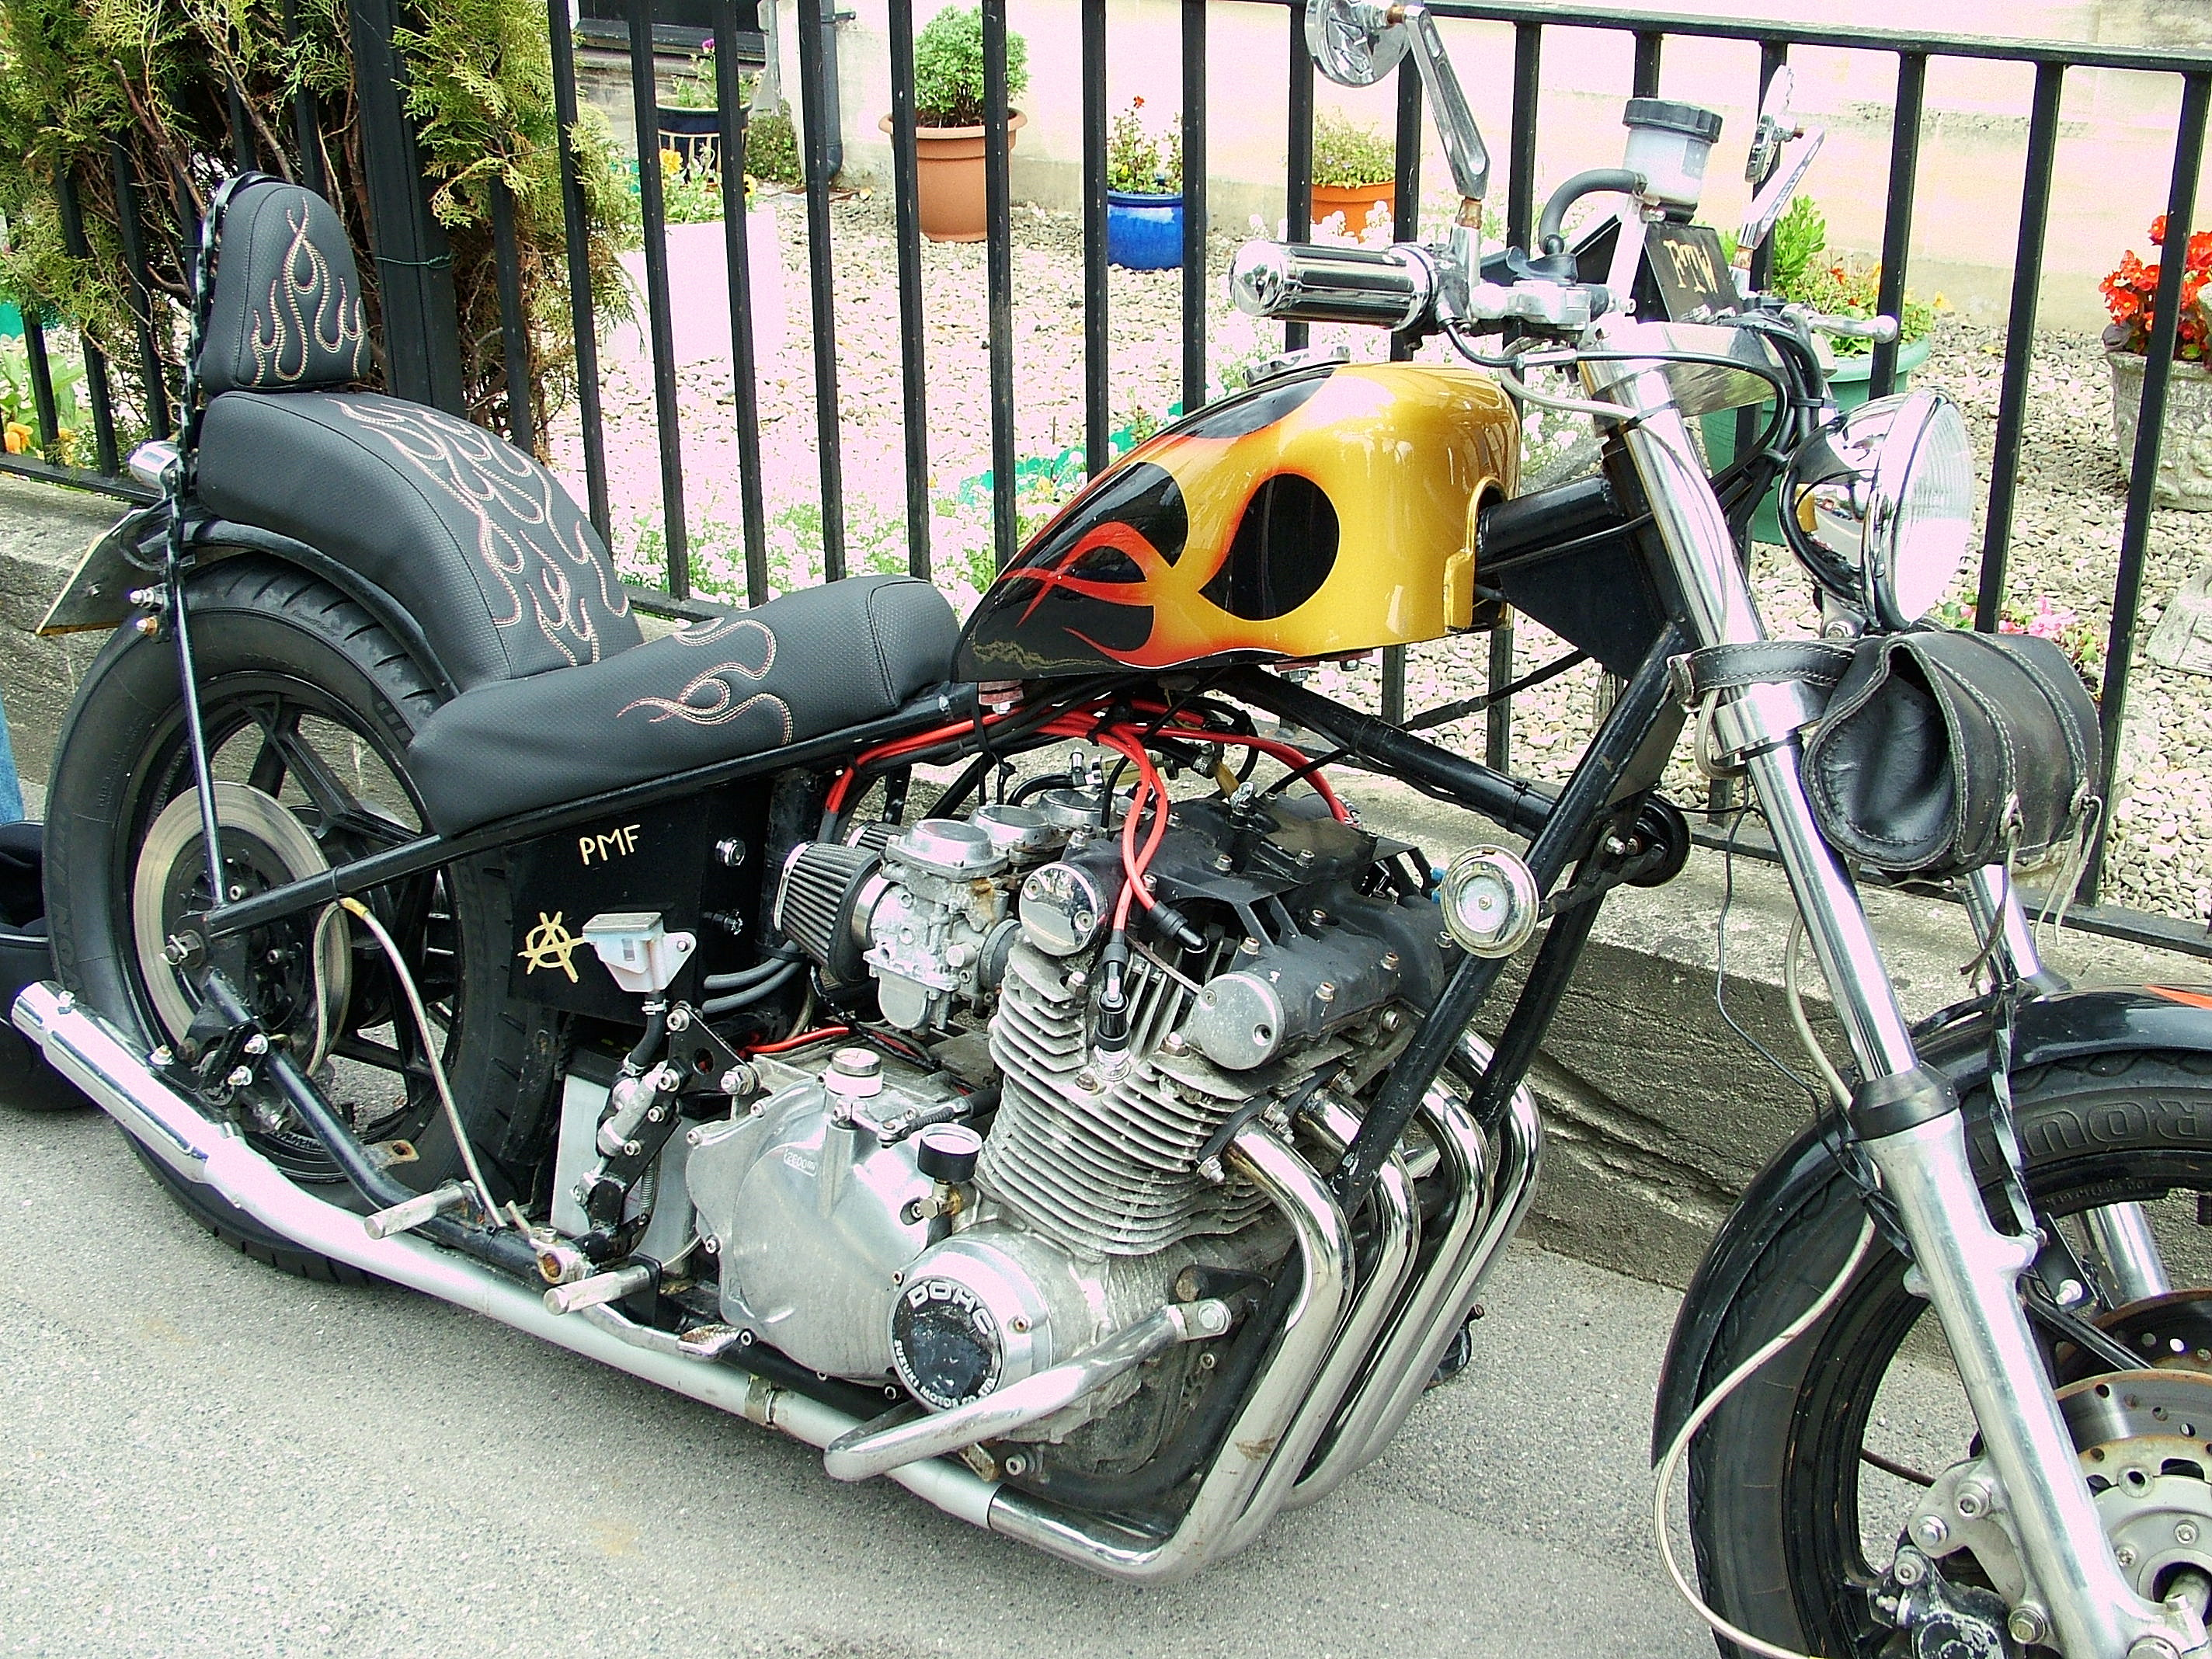 Filesuzuki Gs Chopper Pmf Wikimedia Commons Motorcycle Suzuki Custom